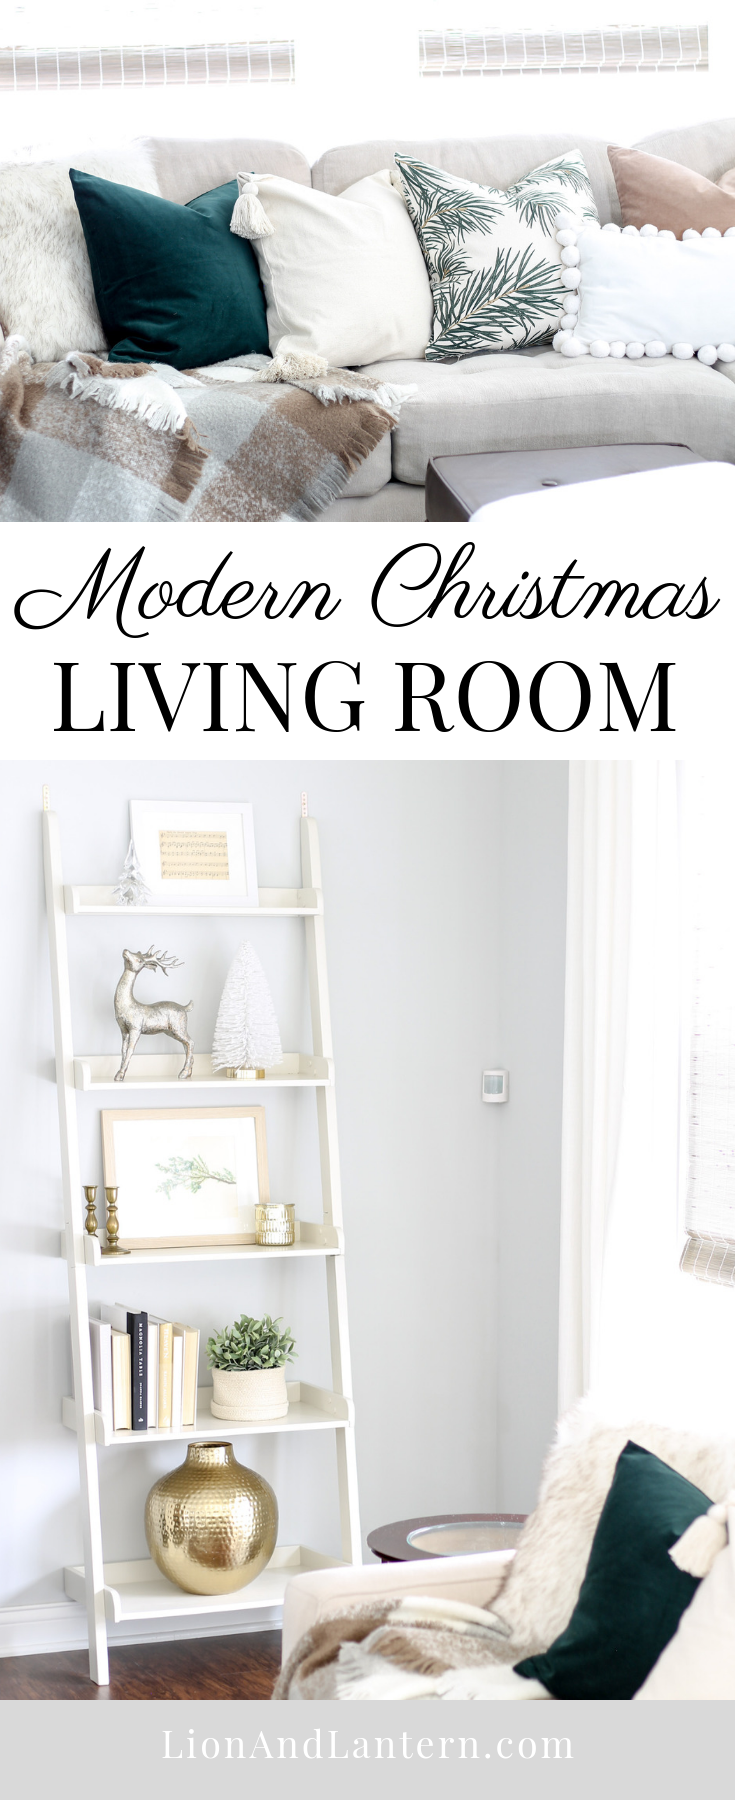 Modern Christmas Living Room at LionAndLantern.com | minimalist Christmas, Scandinavian Christmas, farmhouse Christmas, metallics, bronze, white, neutral living room, ladder shelf, throw pillow covers